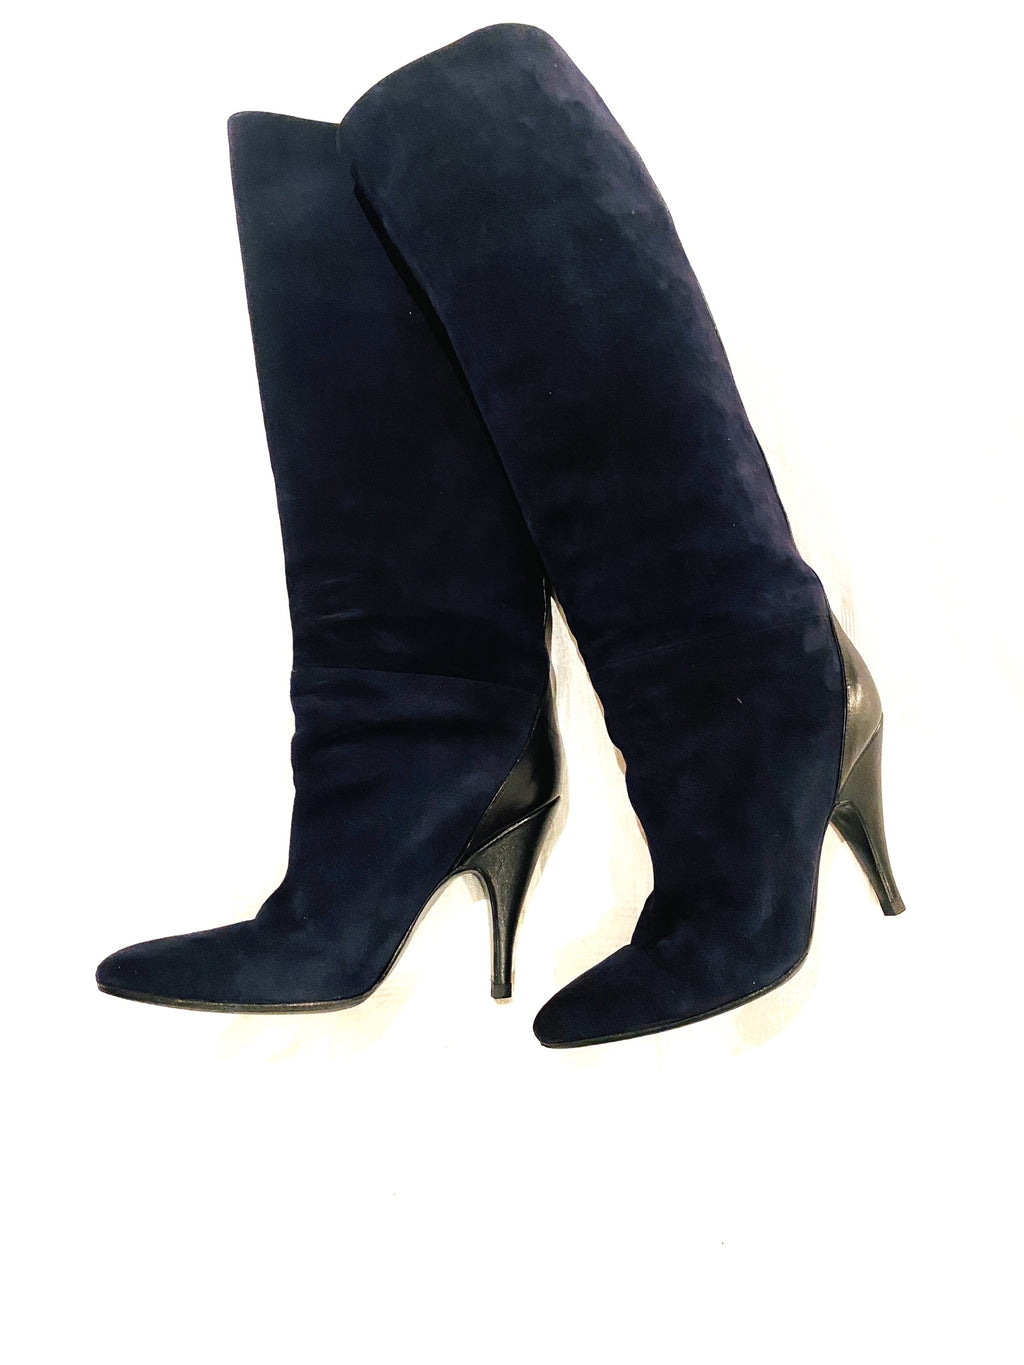 Hermes suede boots, dark blue, black leather band, with high heels, size 40